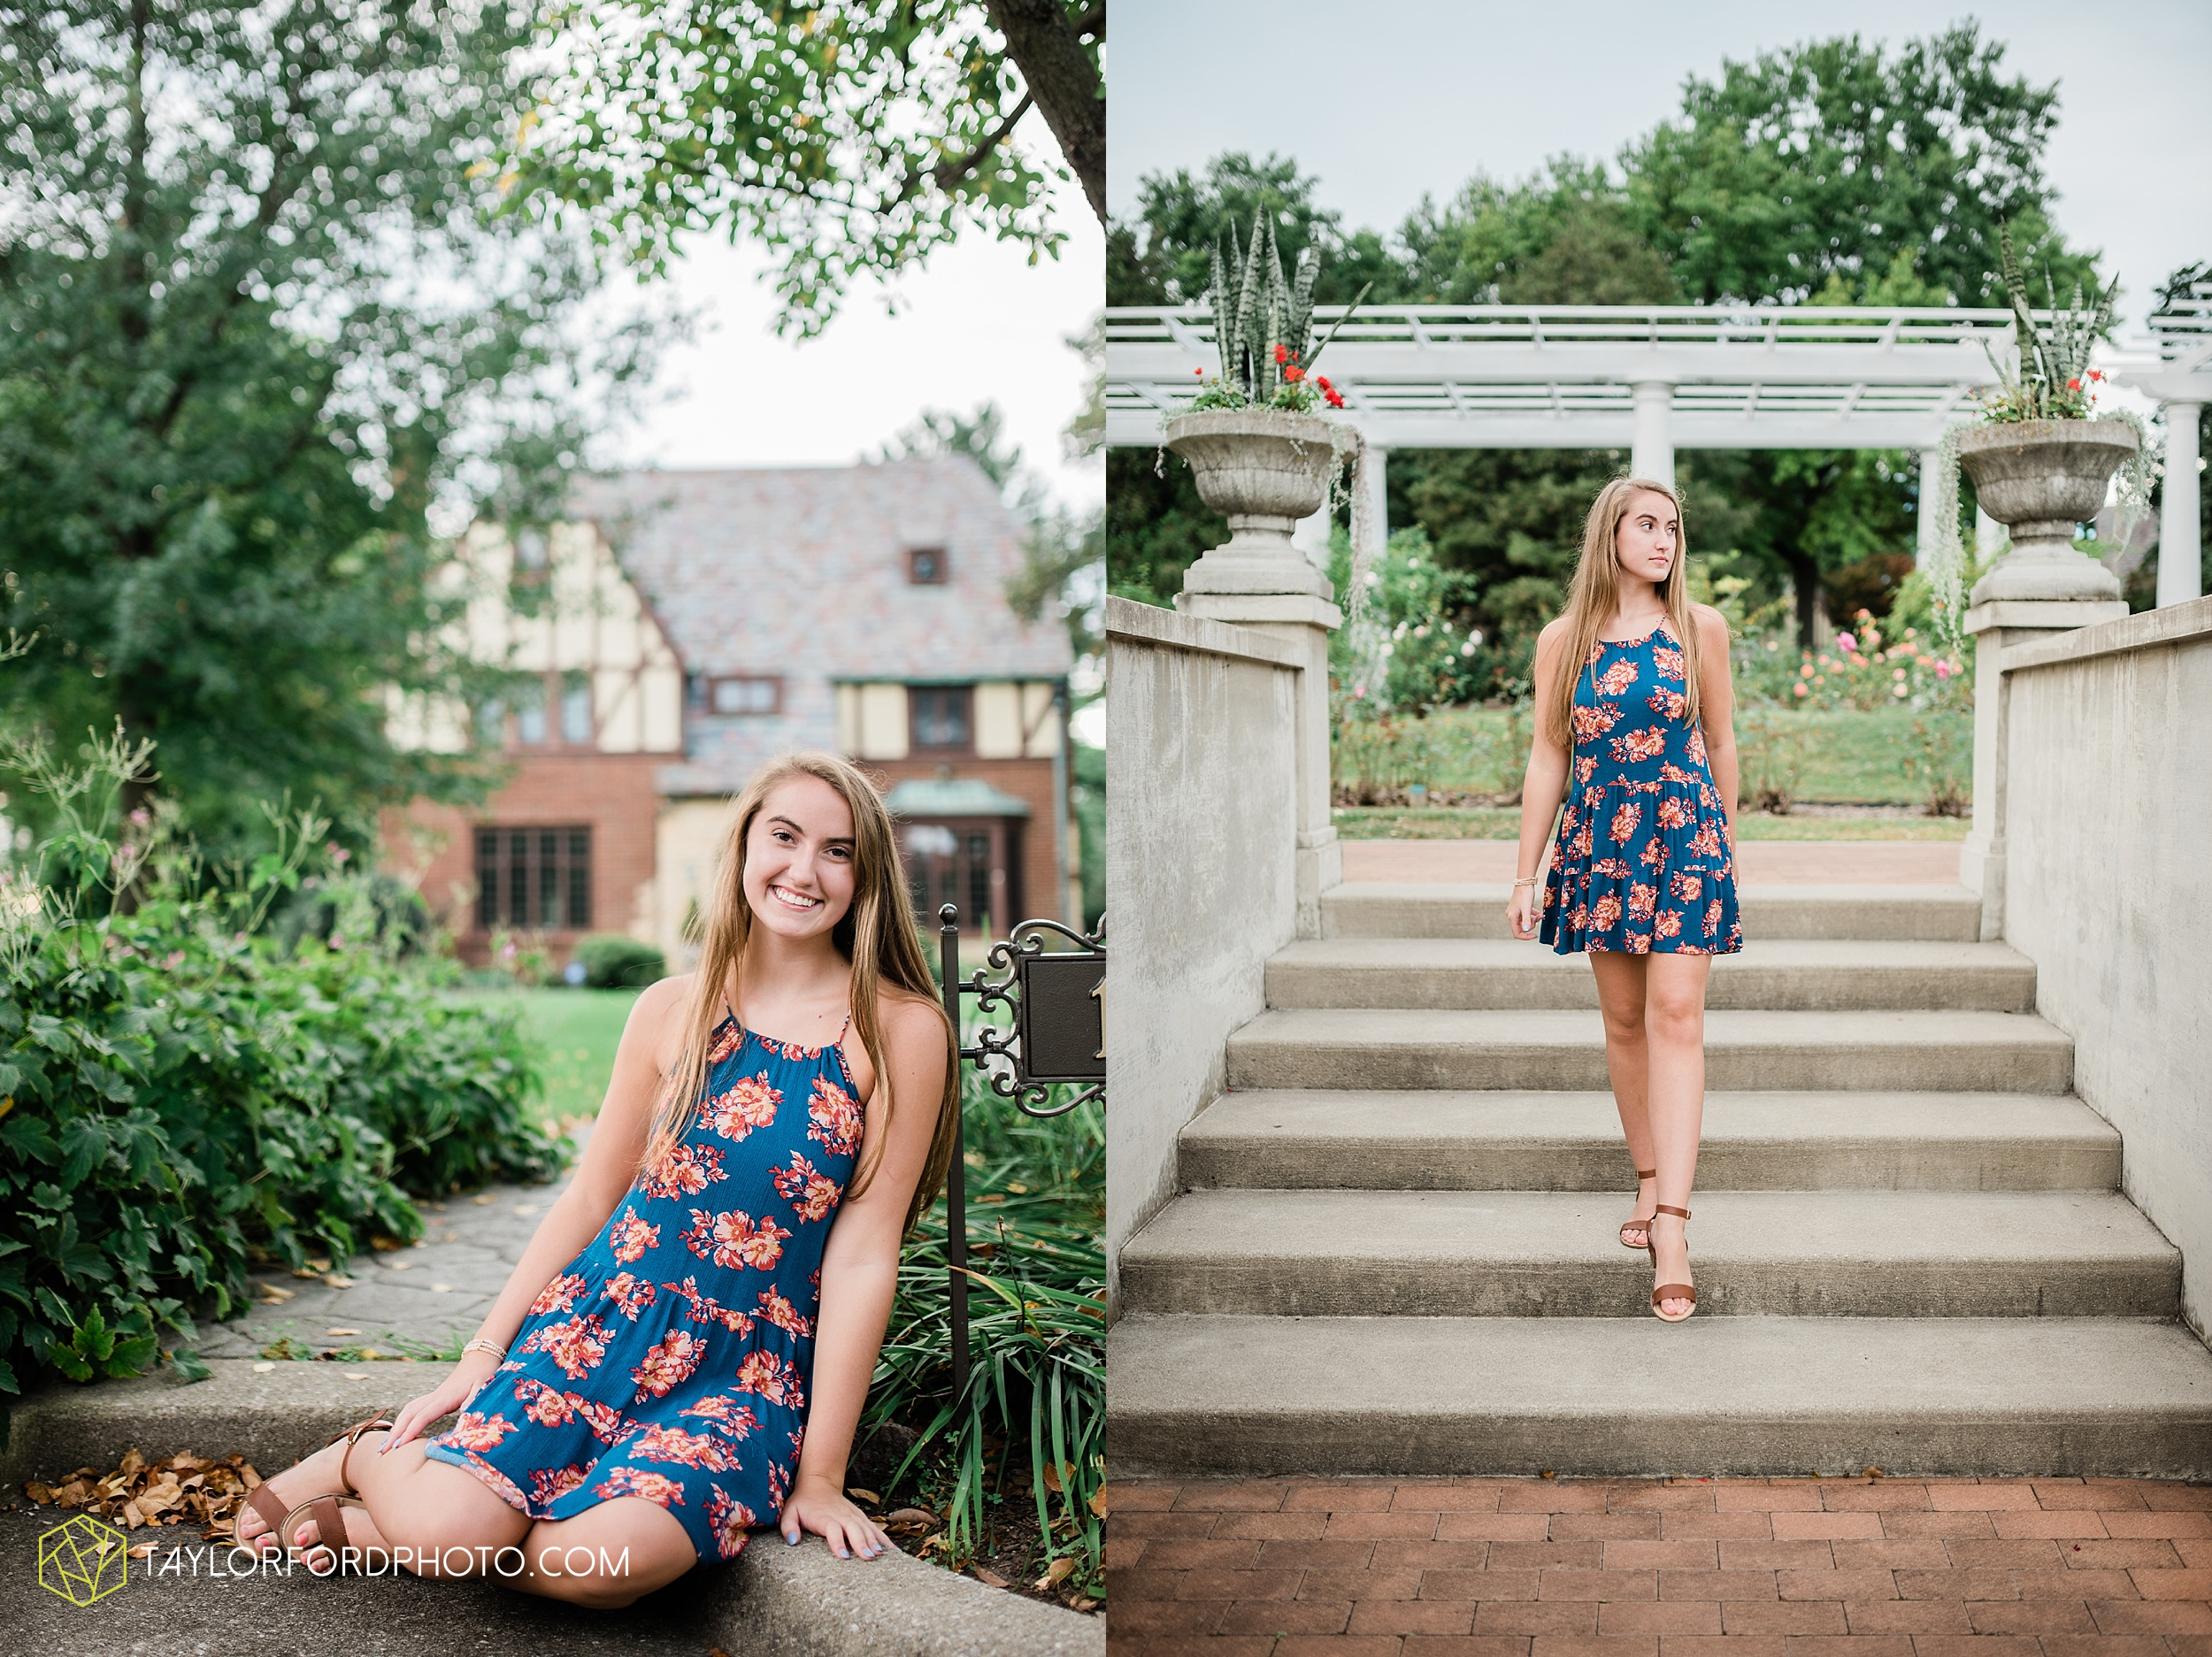 fort-wayne-indiana-carroll-high-school-senior-downtown-lake-side-rose-garden-photographer-taylor-ford-photography_0705.jpg